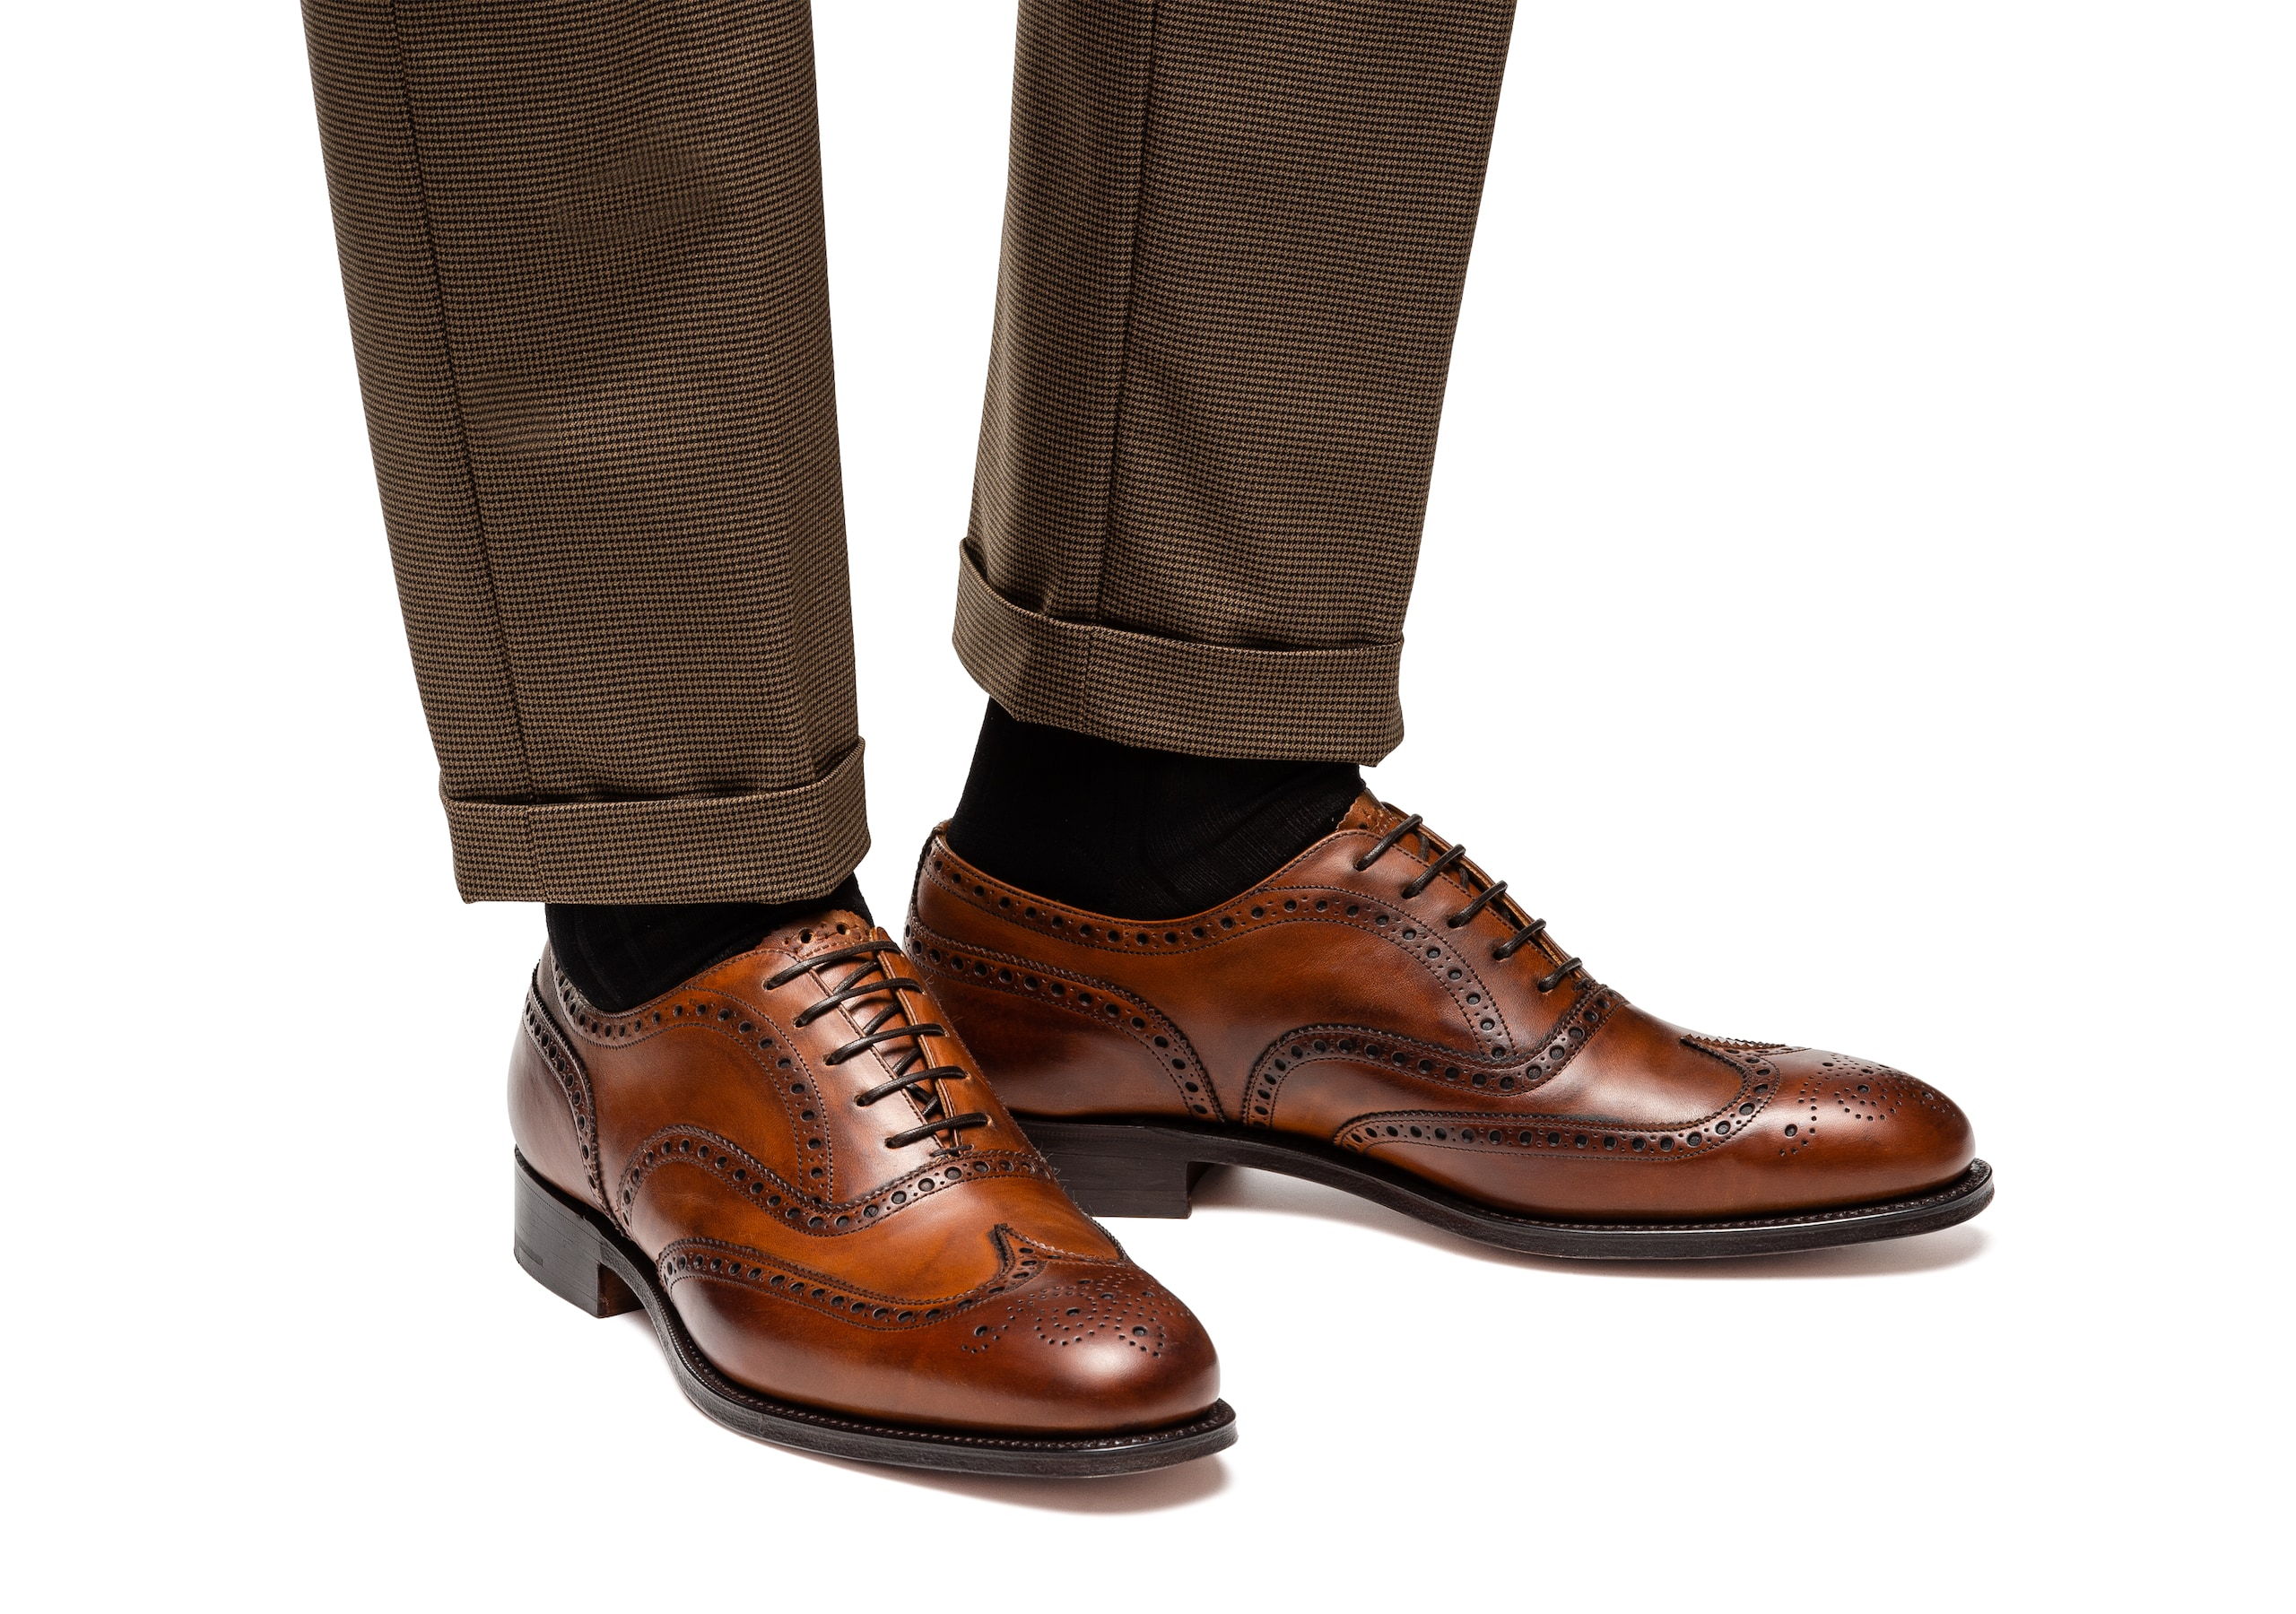 Chetwynd Church's Nevada Leather Oxford Brogue Brown